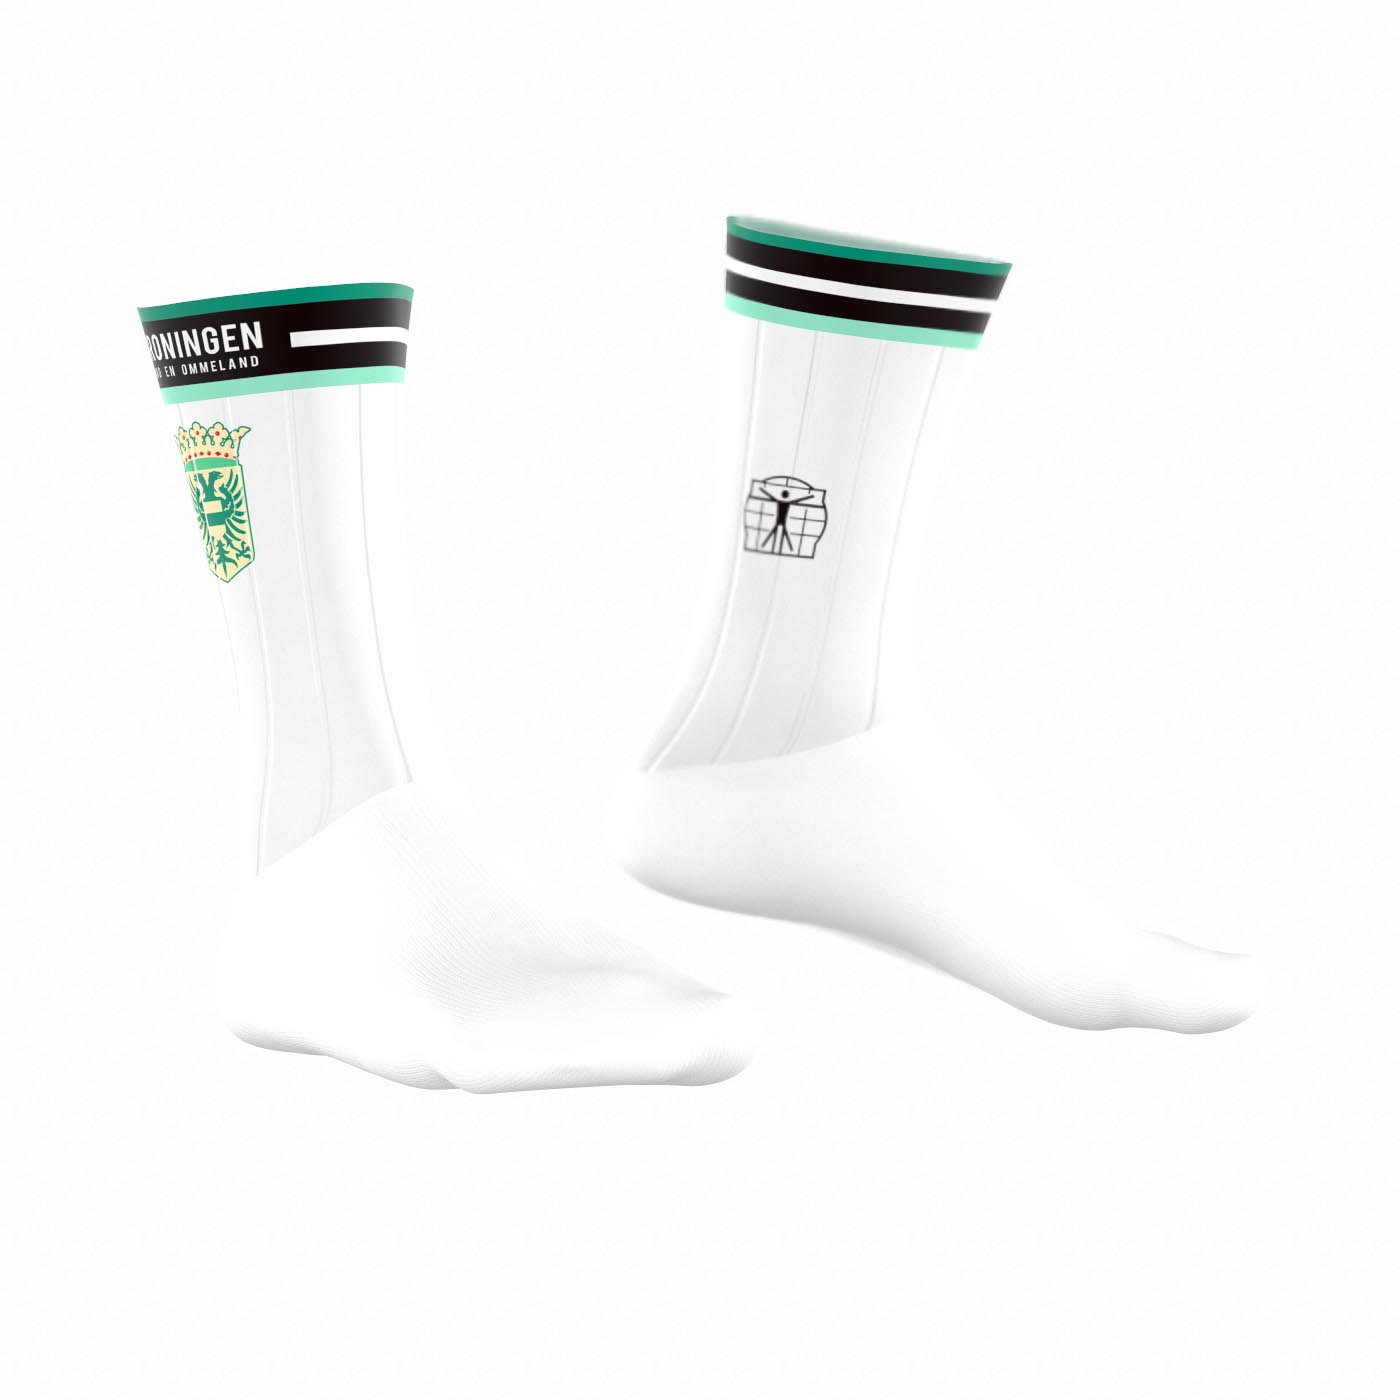 prj20-010121_acc-speedsocks_left